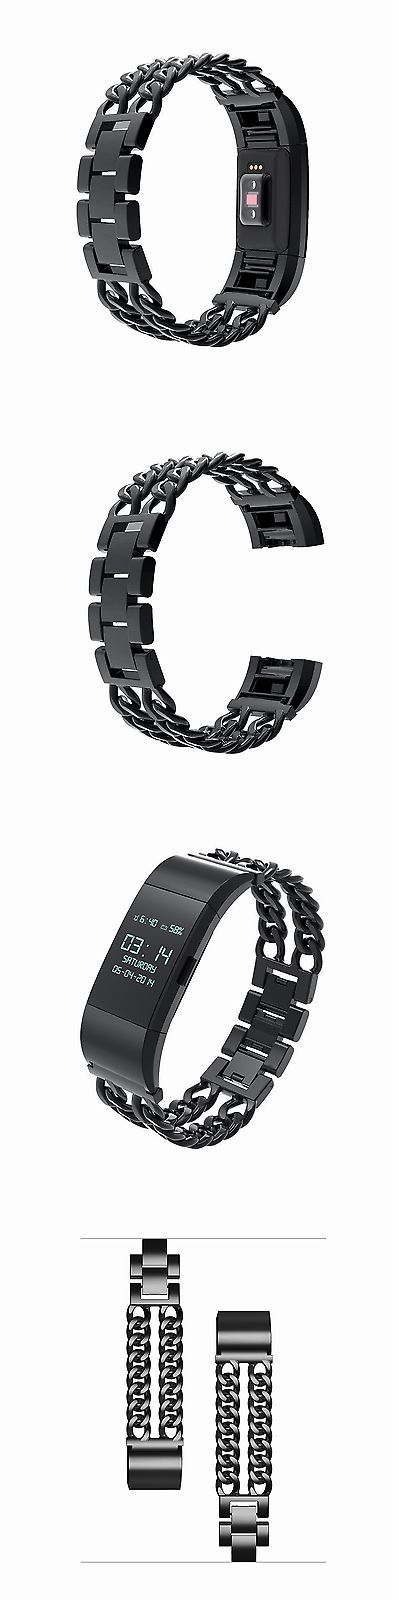 Fit Tech Parts and Accessories 179799: Fitbit Charge 2 Bands Replacement Metal Watch Bracelet Large Wrist Fitness Black BUY IT NOW ONLY: $33.73